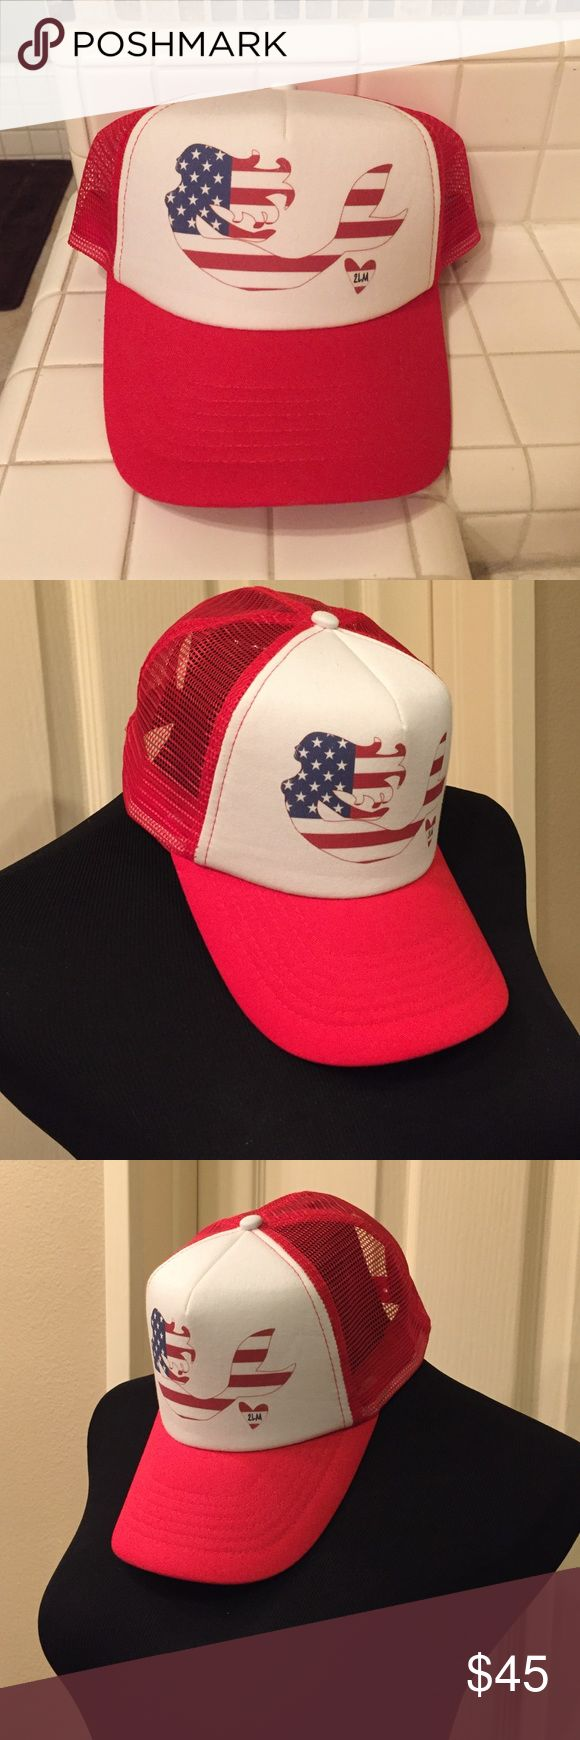 American flag mermaid trucker hat Purchased at a fun mermaid market but I just don't wear it enough. I do love the hat so I will not be very negotiable on the price. I may just keep it if it does not sell. 2 Legged Mermaid Accessories Hats